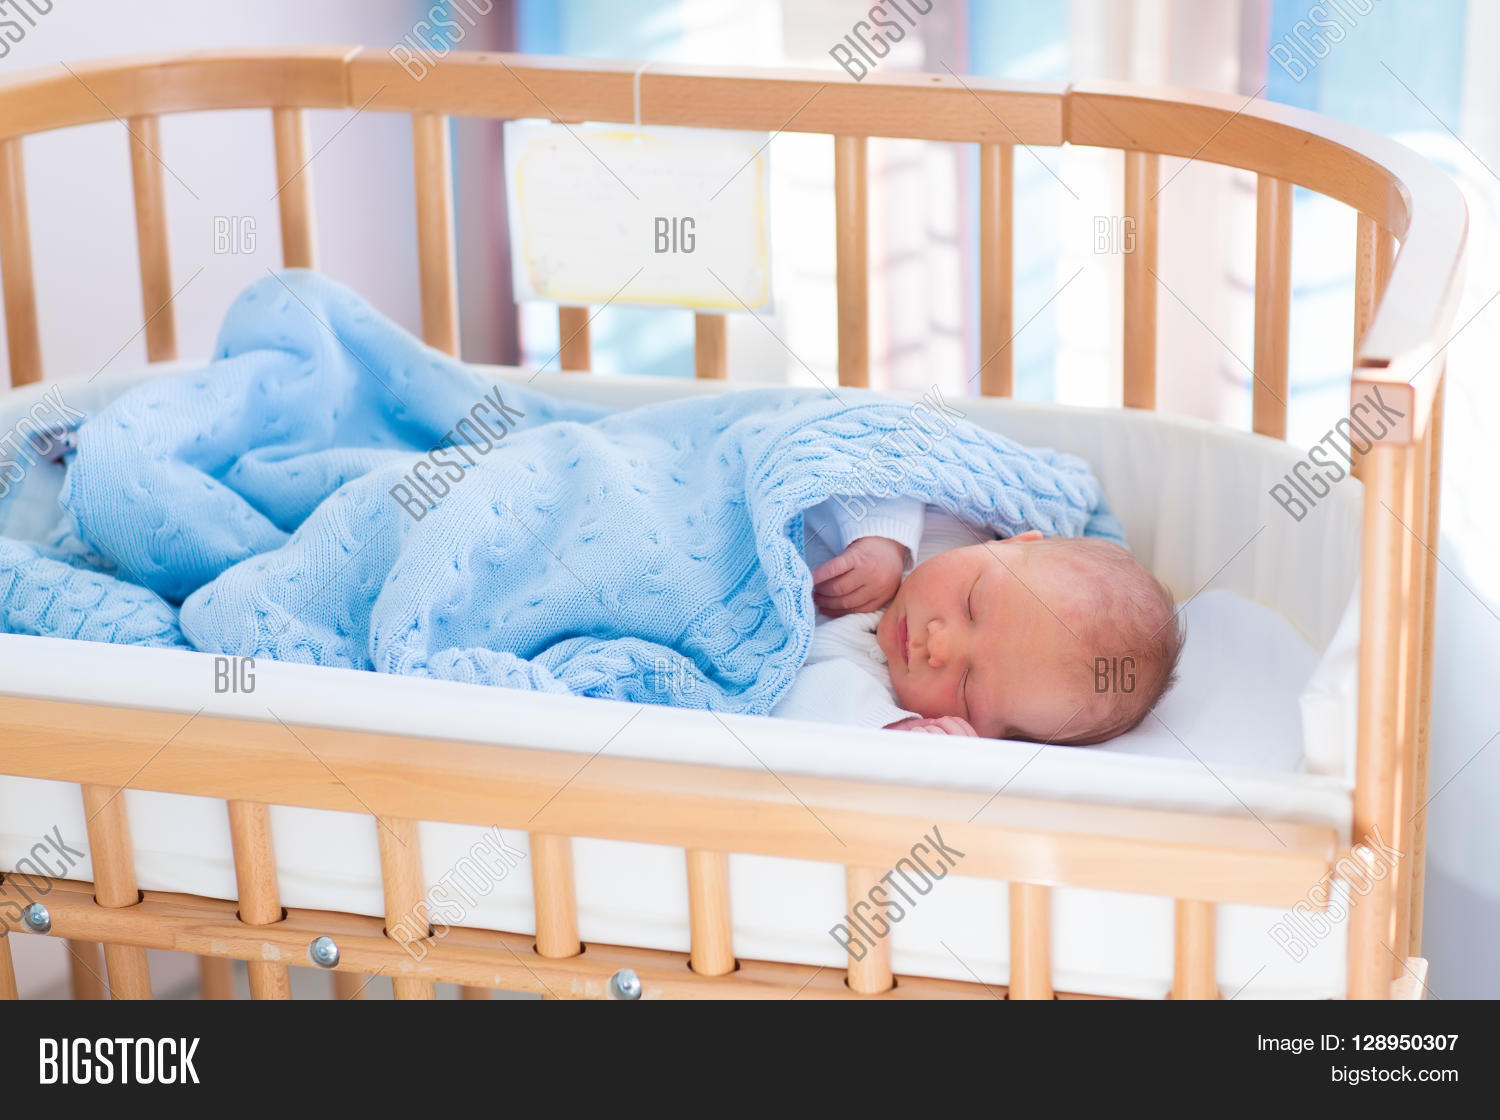 Safest crib for babies - Newborn Baby In Hospital Room New Born Child In Wooden Co Sleeper Crib Infant Sleeping In Bedside